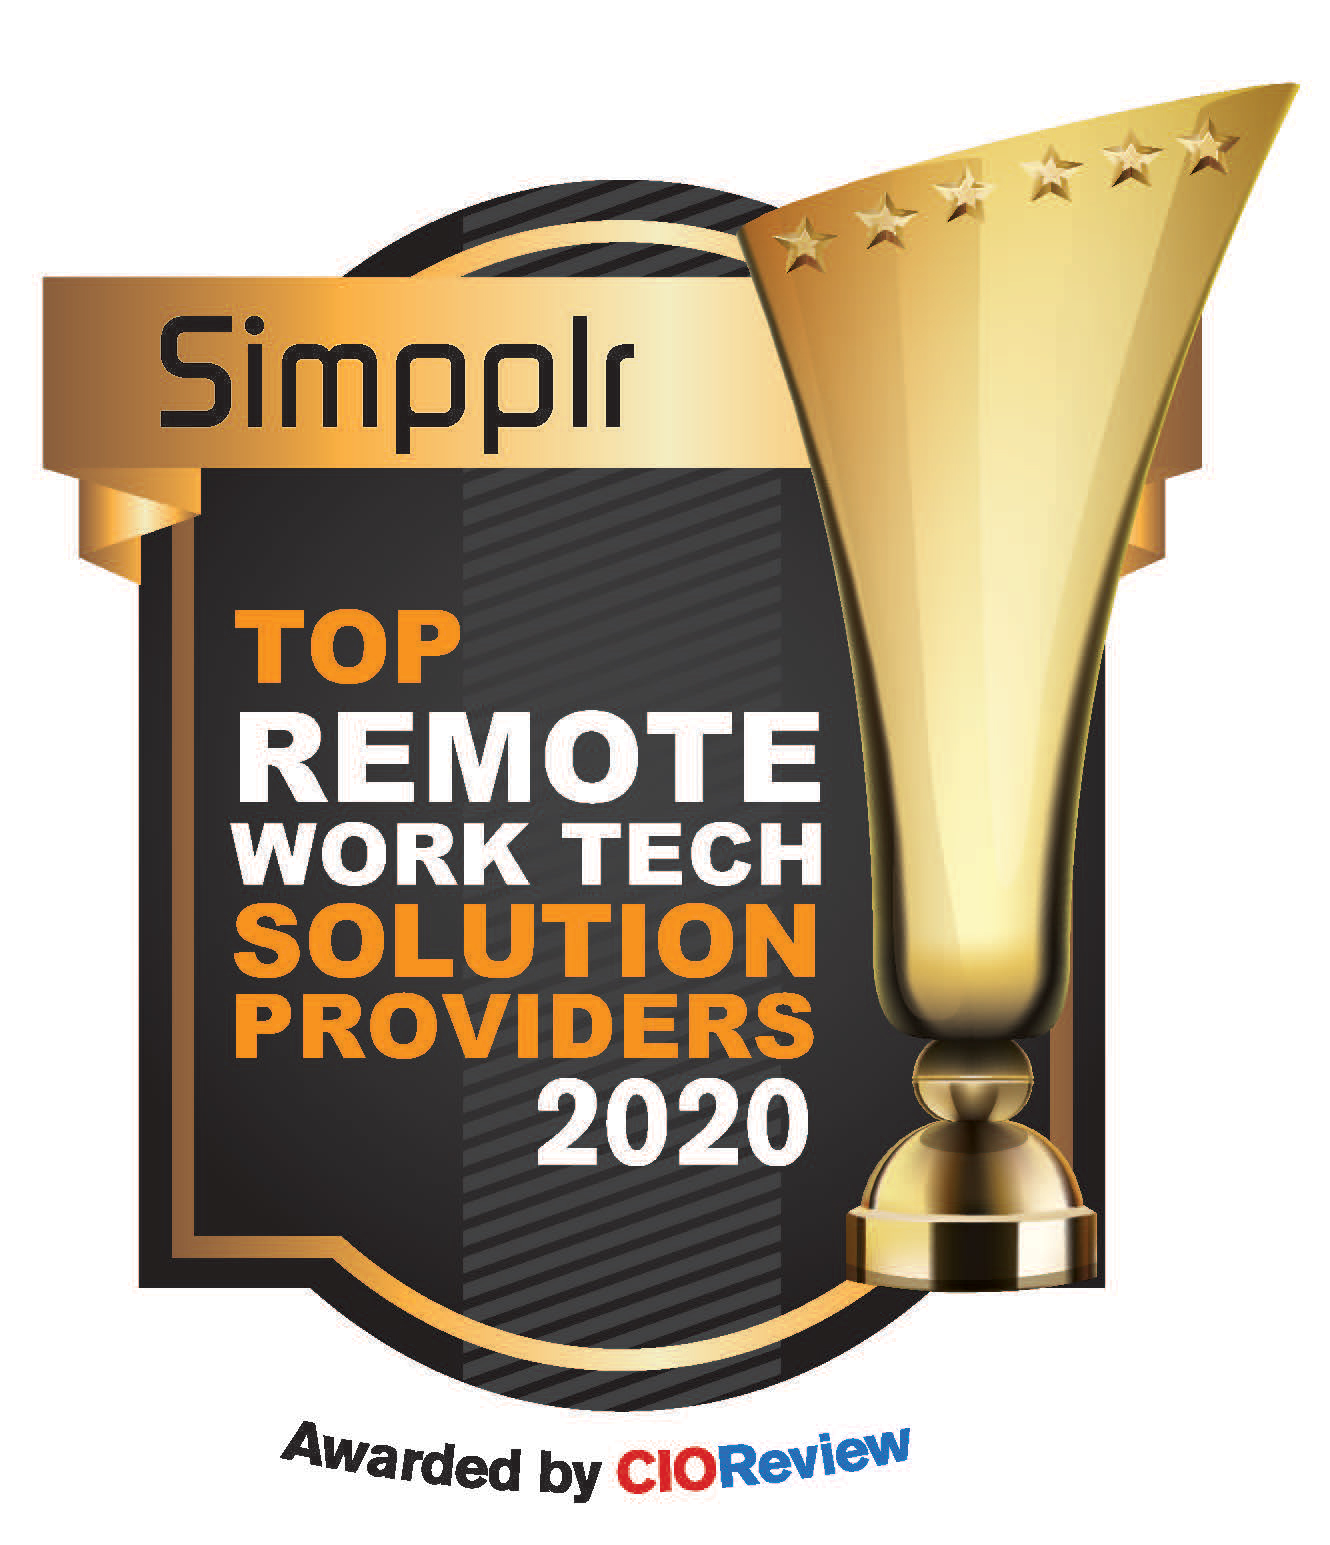 Top 10 Remote Work Tech Solution Companies - 2020